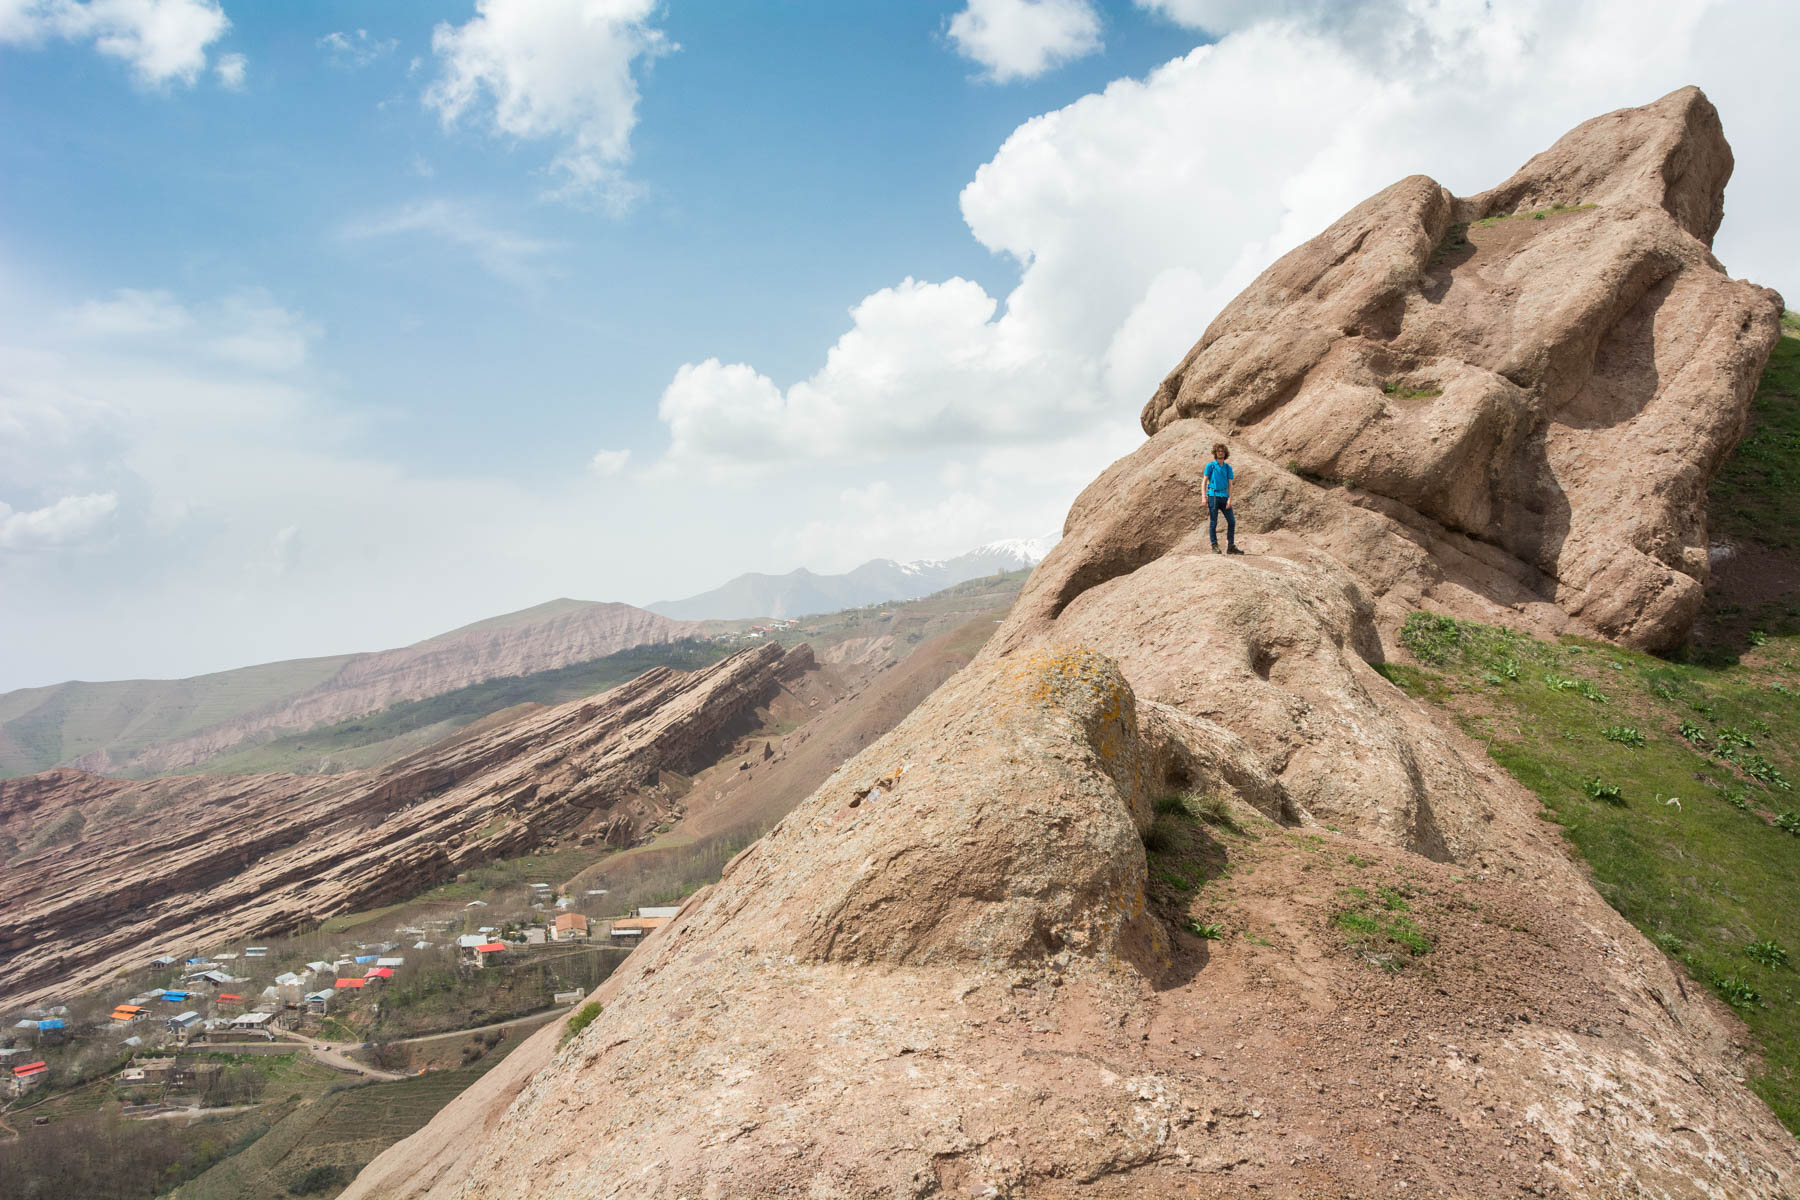 The epic view from one of the Castles of the Assassins in the Alamut Valley, Iran - Lost With Purpose